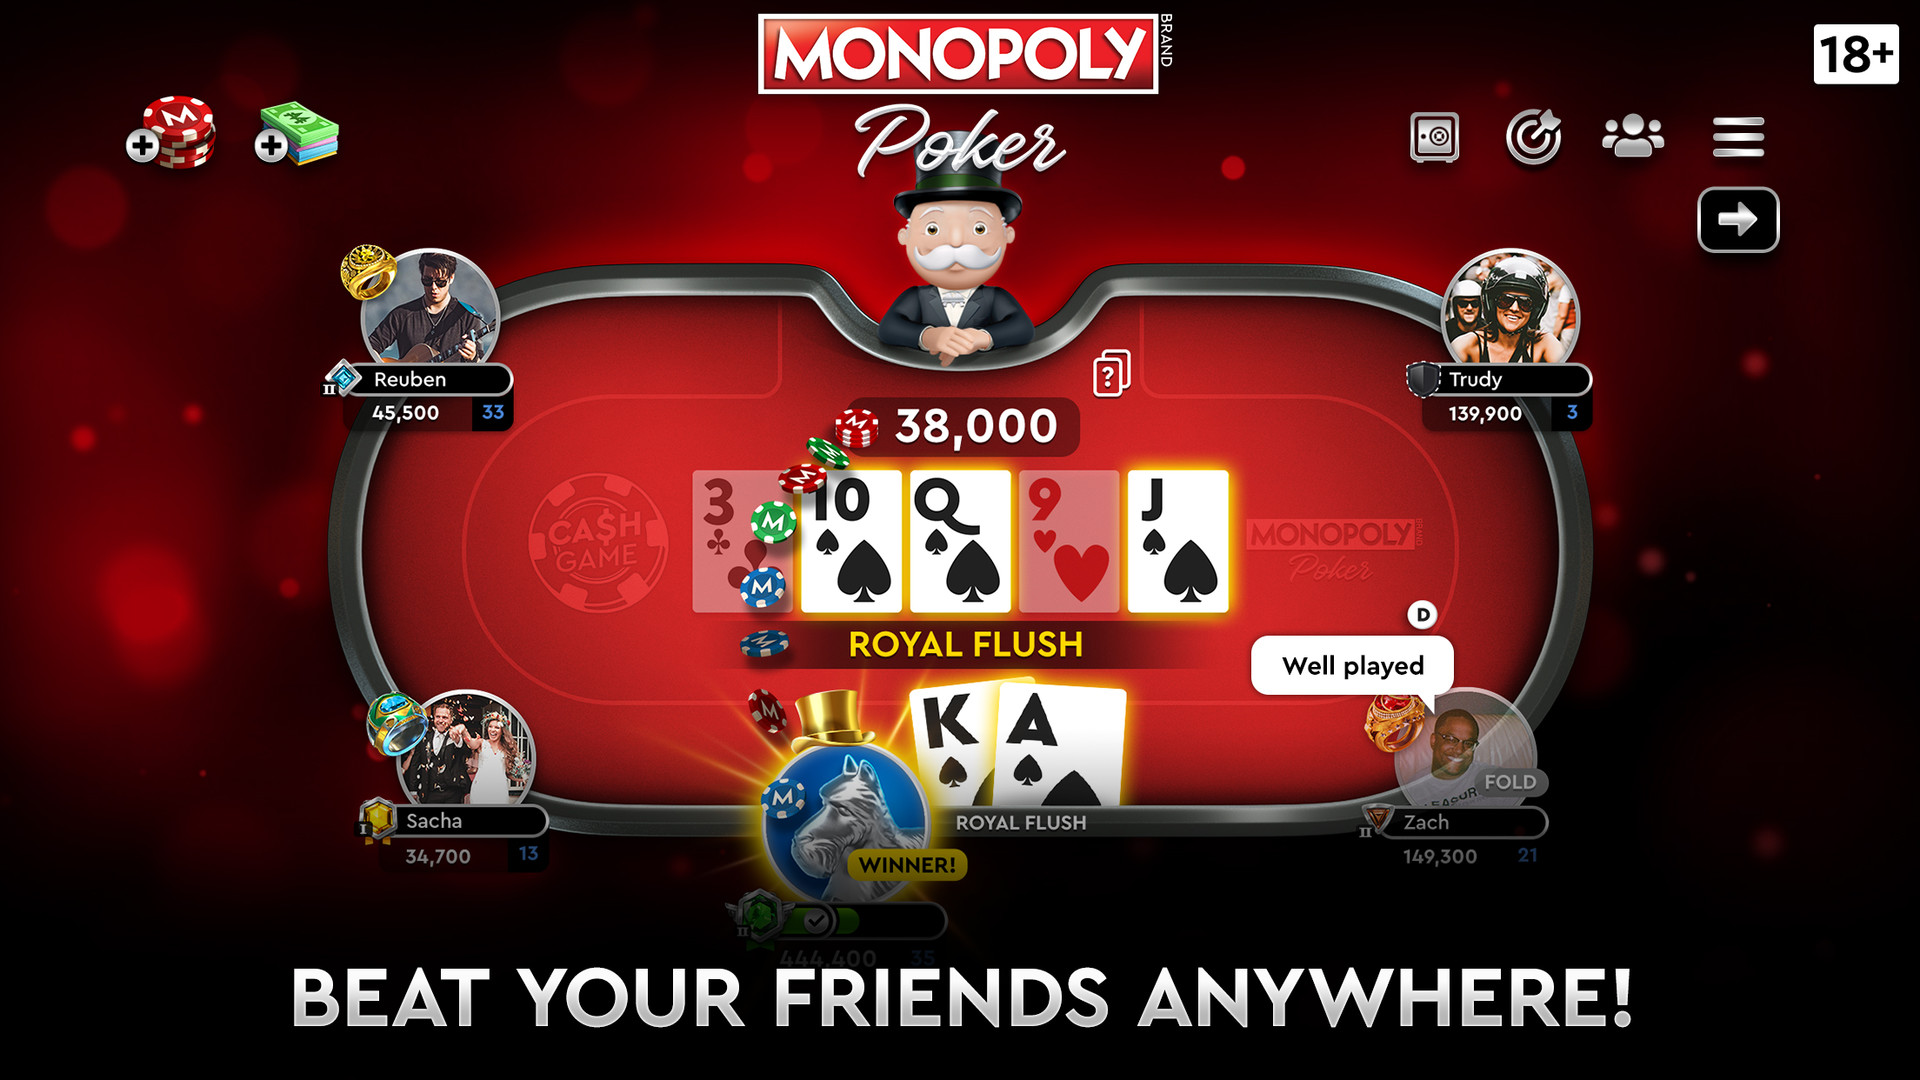 Claim MONOPOLY Poker for free